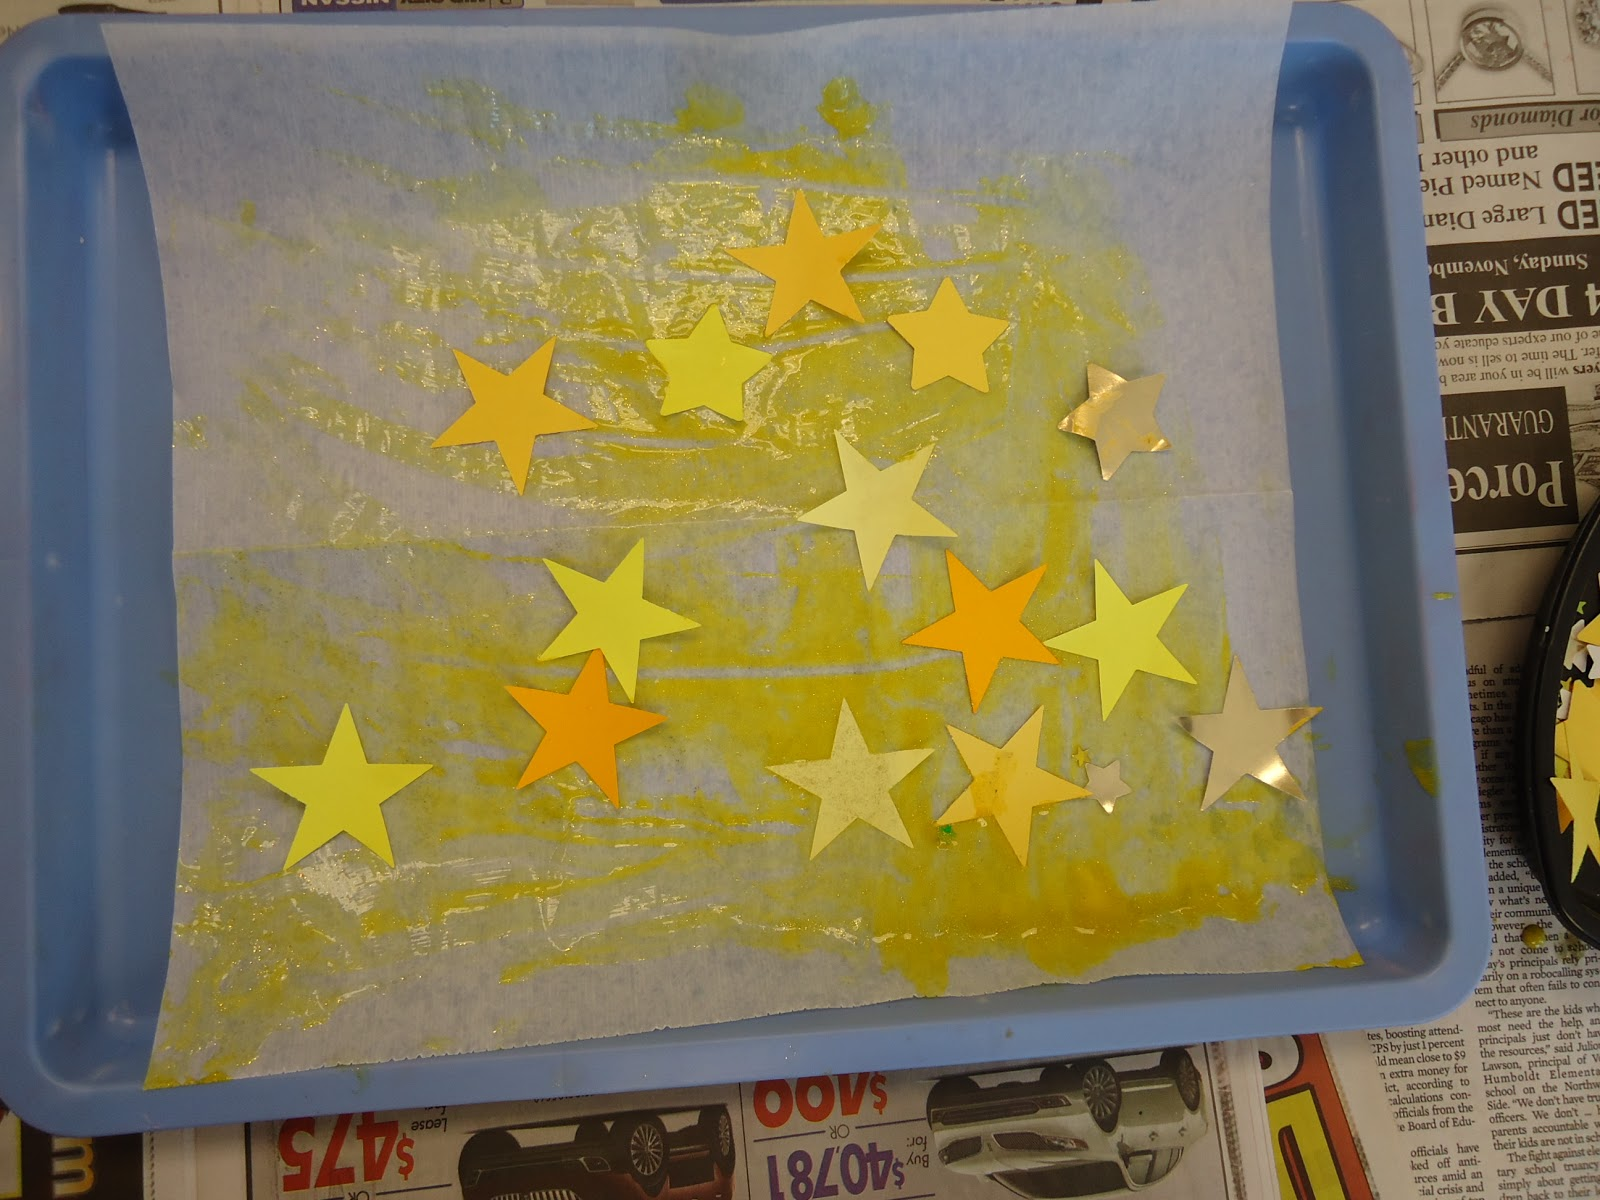 Draw Me A Star by Eric Carle | Kindergarten art, Eric ... |Star Art Projects For Preschoolers